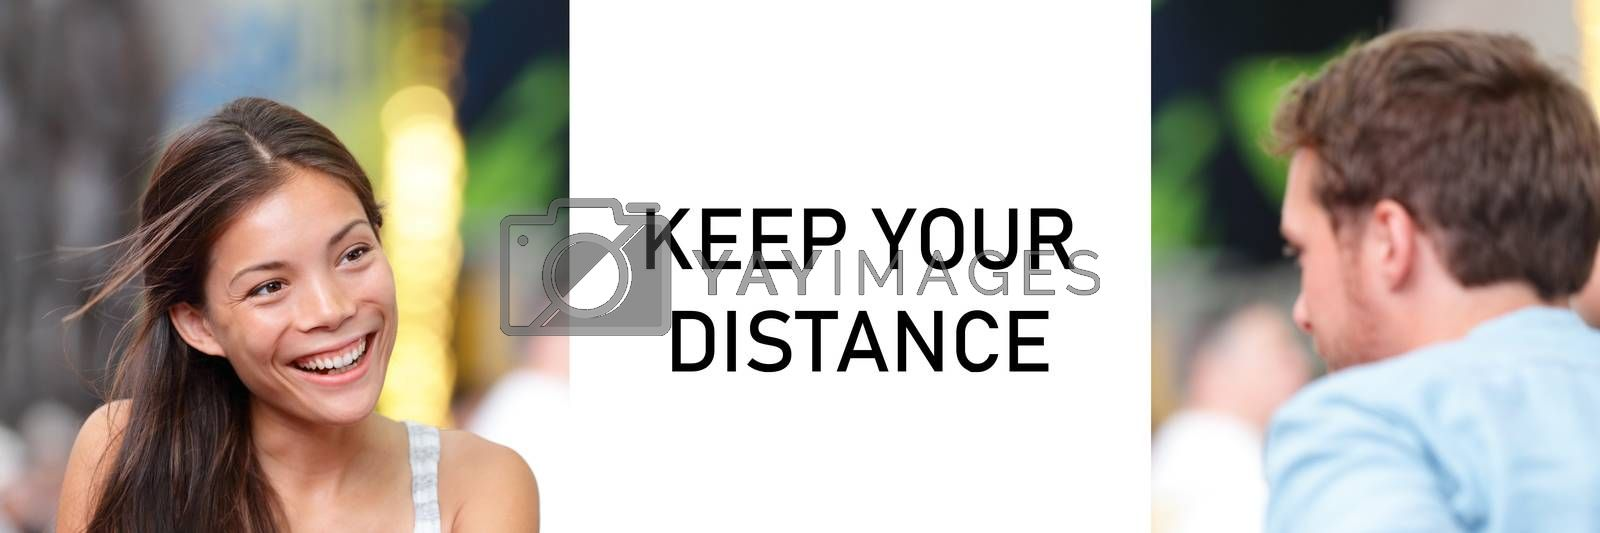 KEEP YOUR DISTANCE Covid-19 warning sign for people meeting talking together panoramic banner. Asian woman speaking to man by Maridav